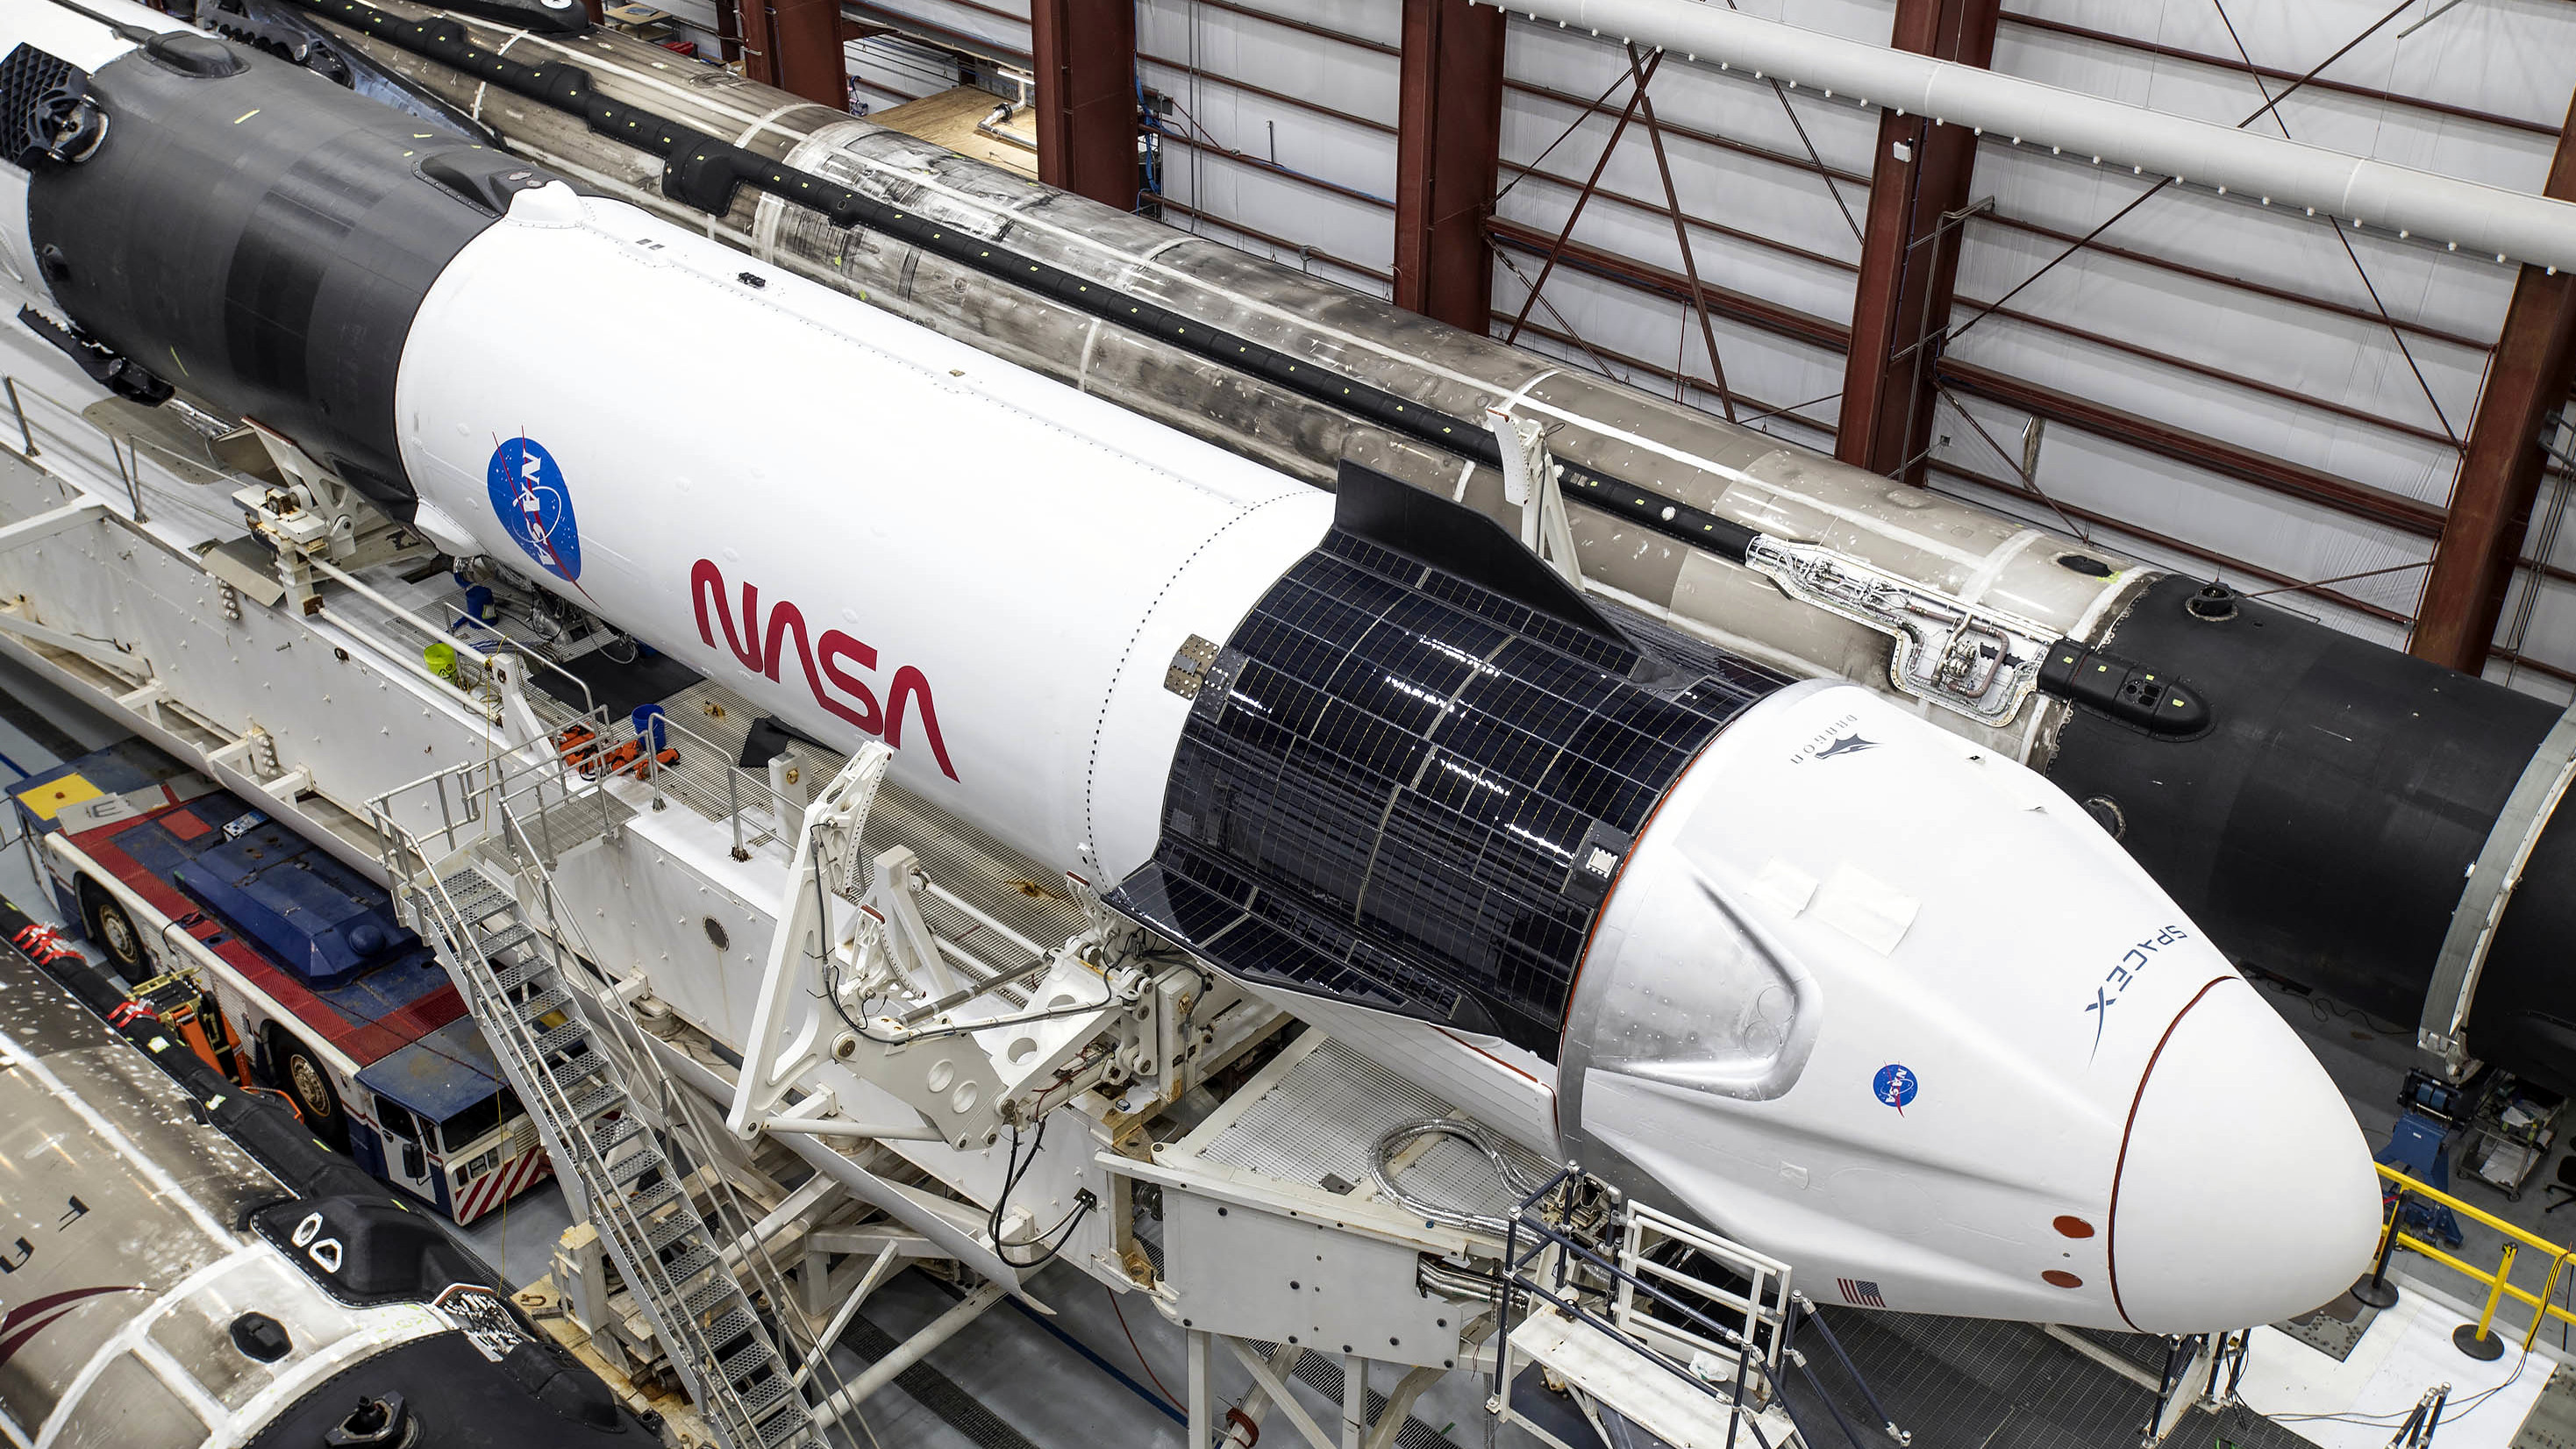 A SpaceX rocket being prepared for a NASA mission.